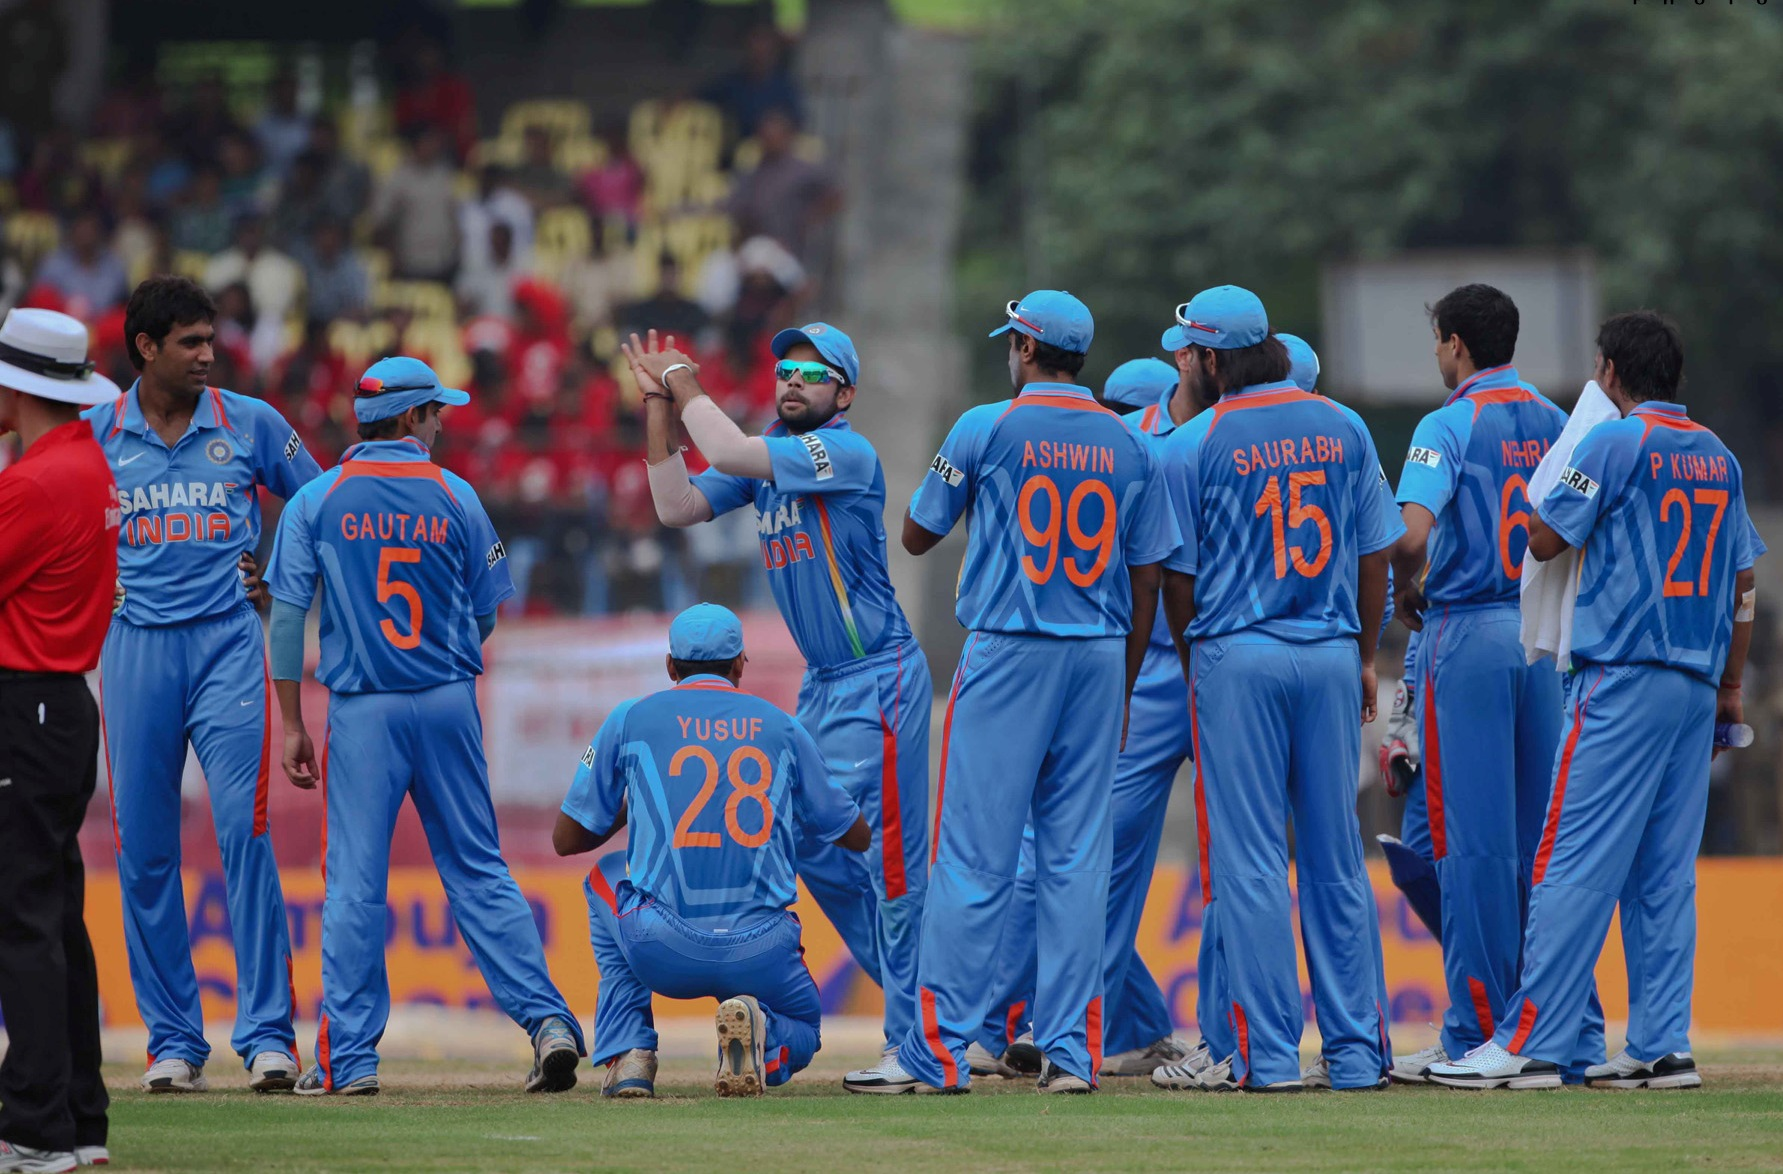 India's predicted Playing XI against Pakistan